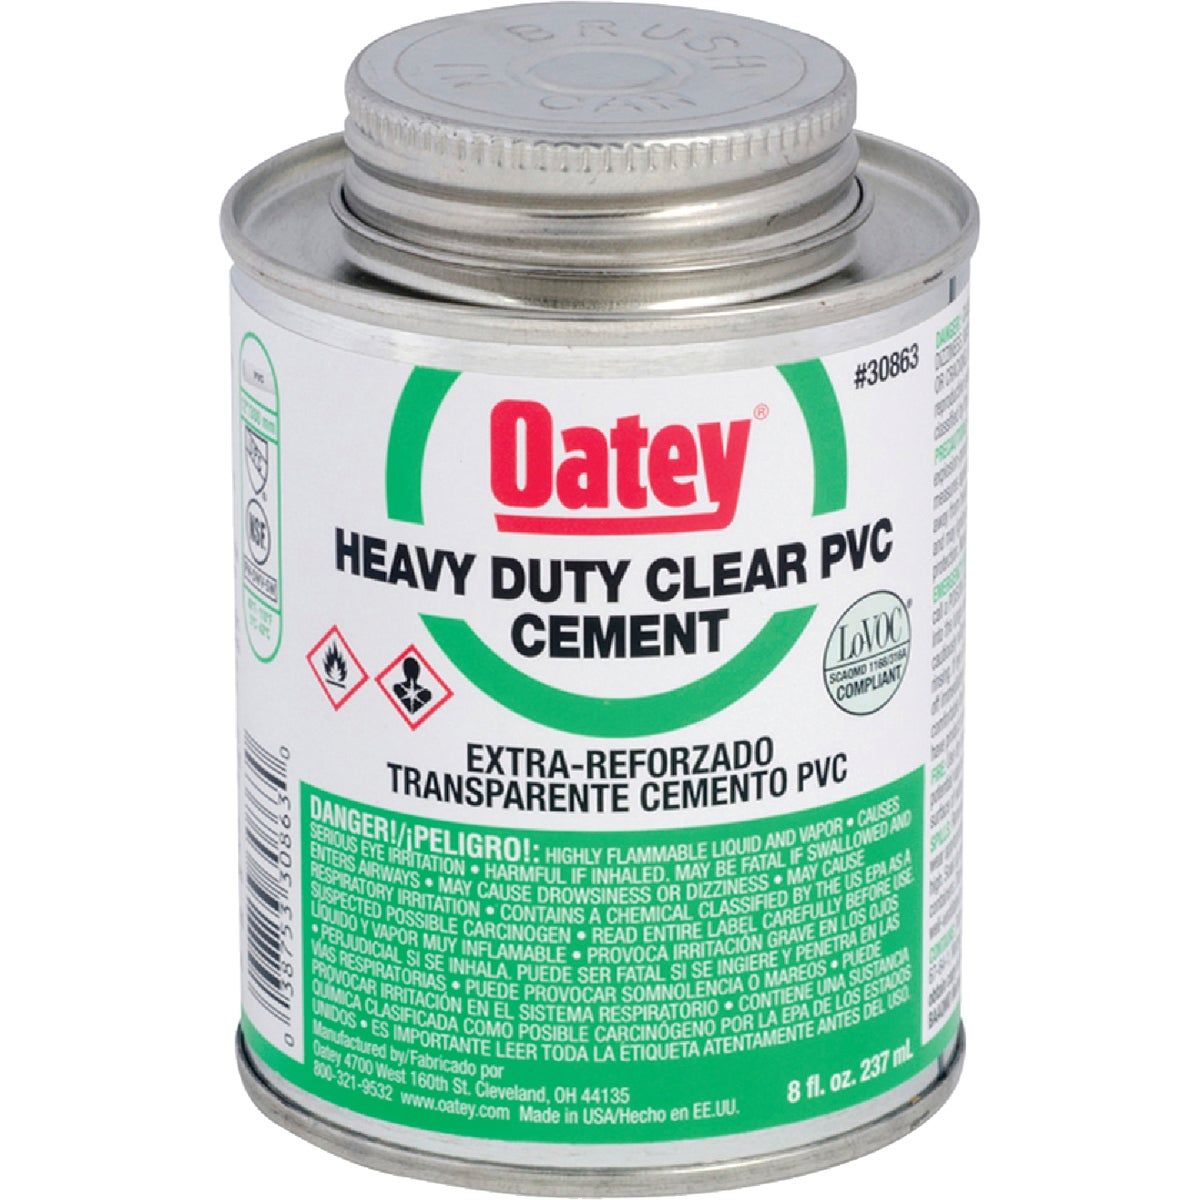 1/2PT H/DUTY PVC CEMENT - 30863 by Oatey Scs